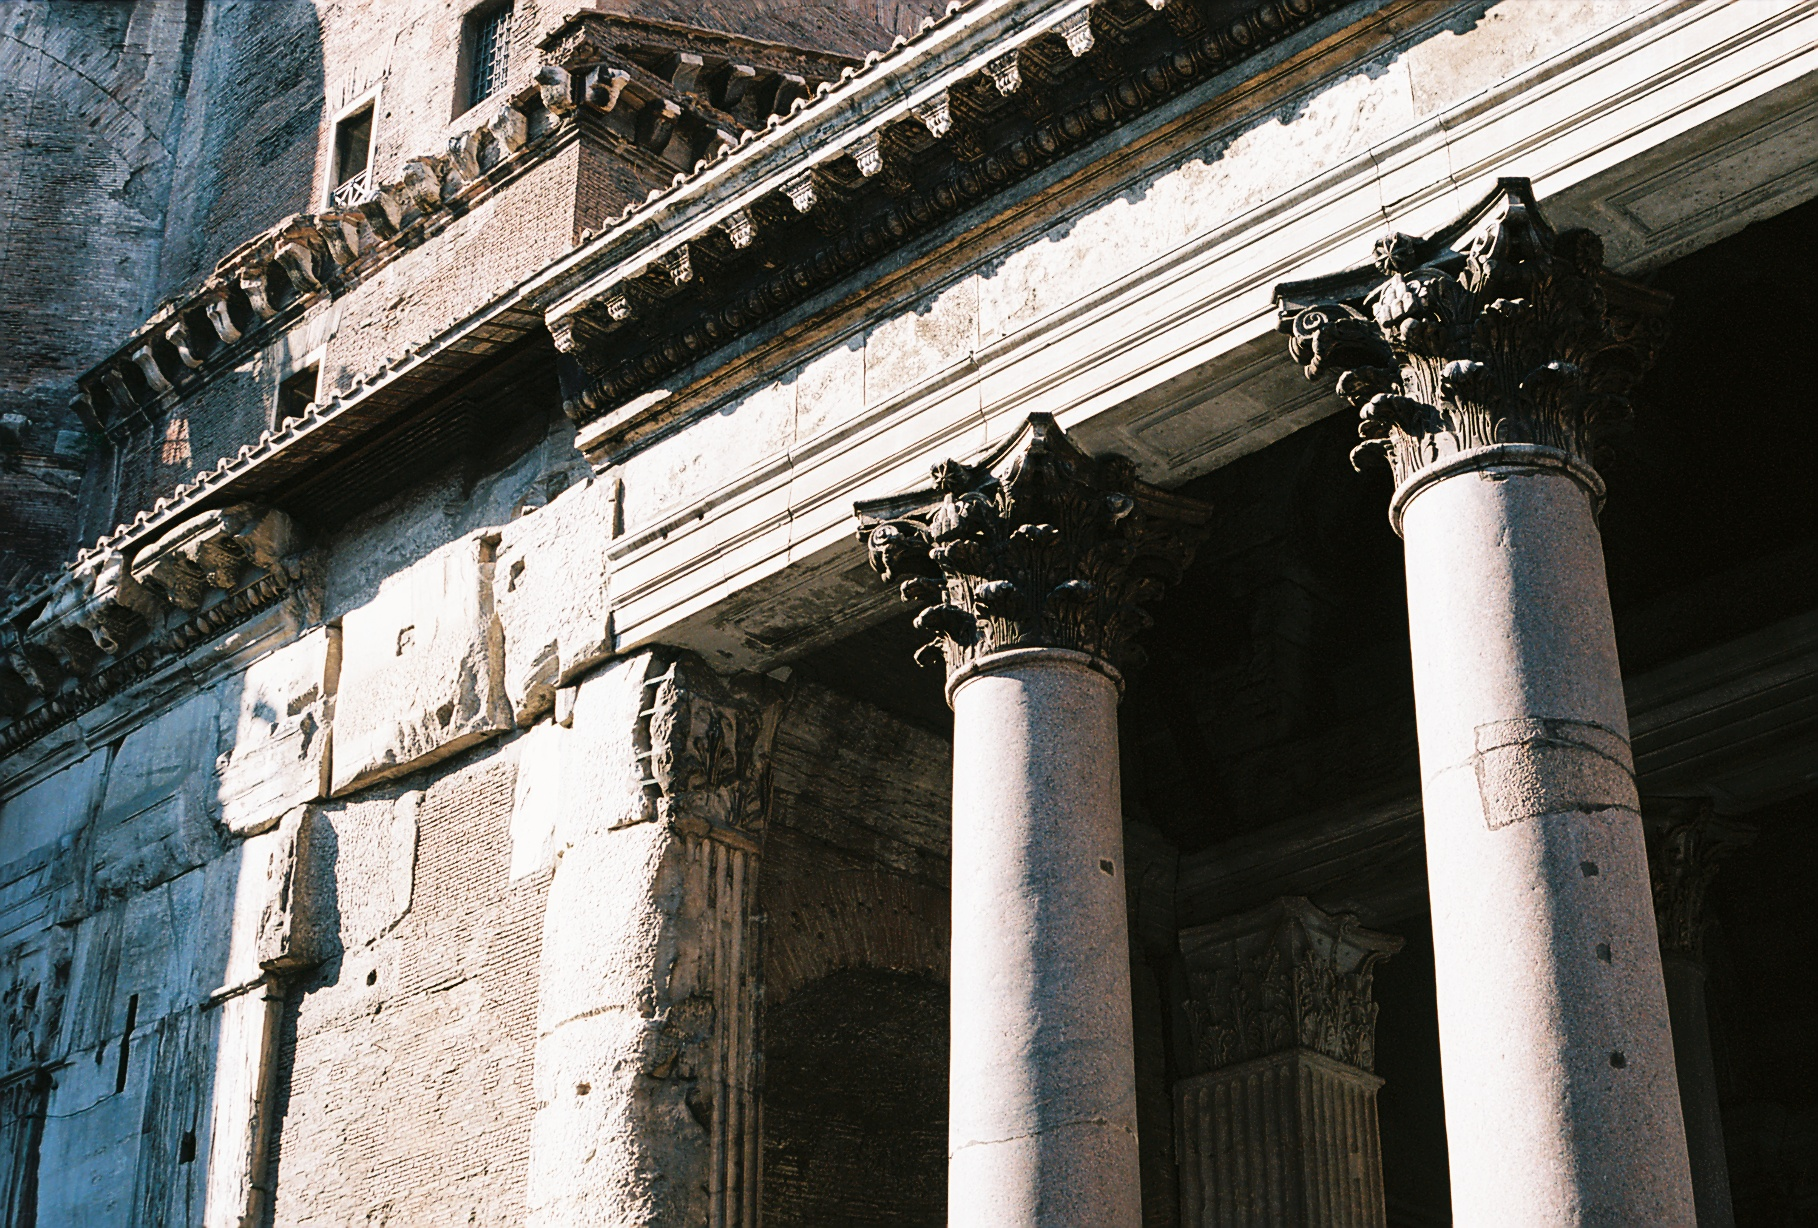 Columns of the Pantheon in Rome, Italy.